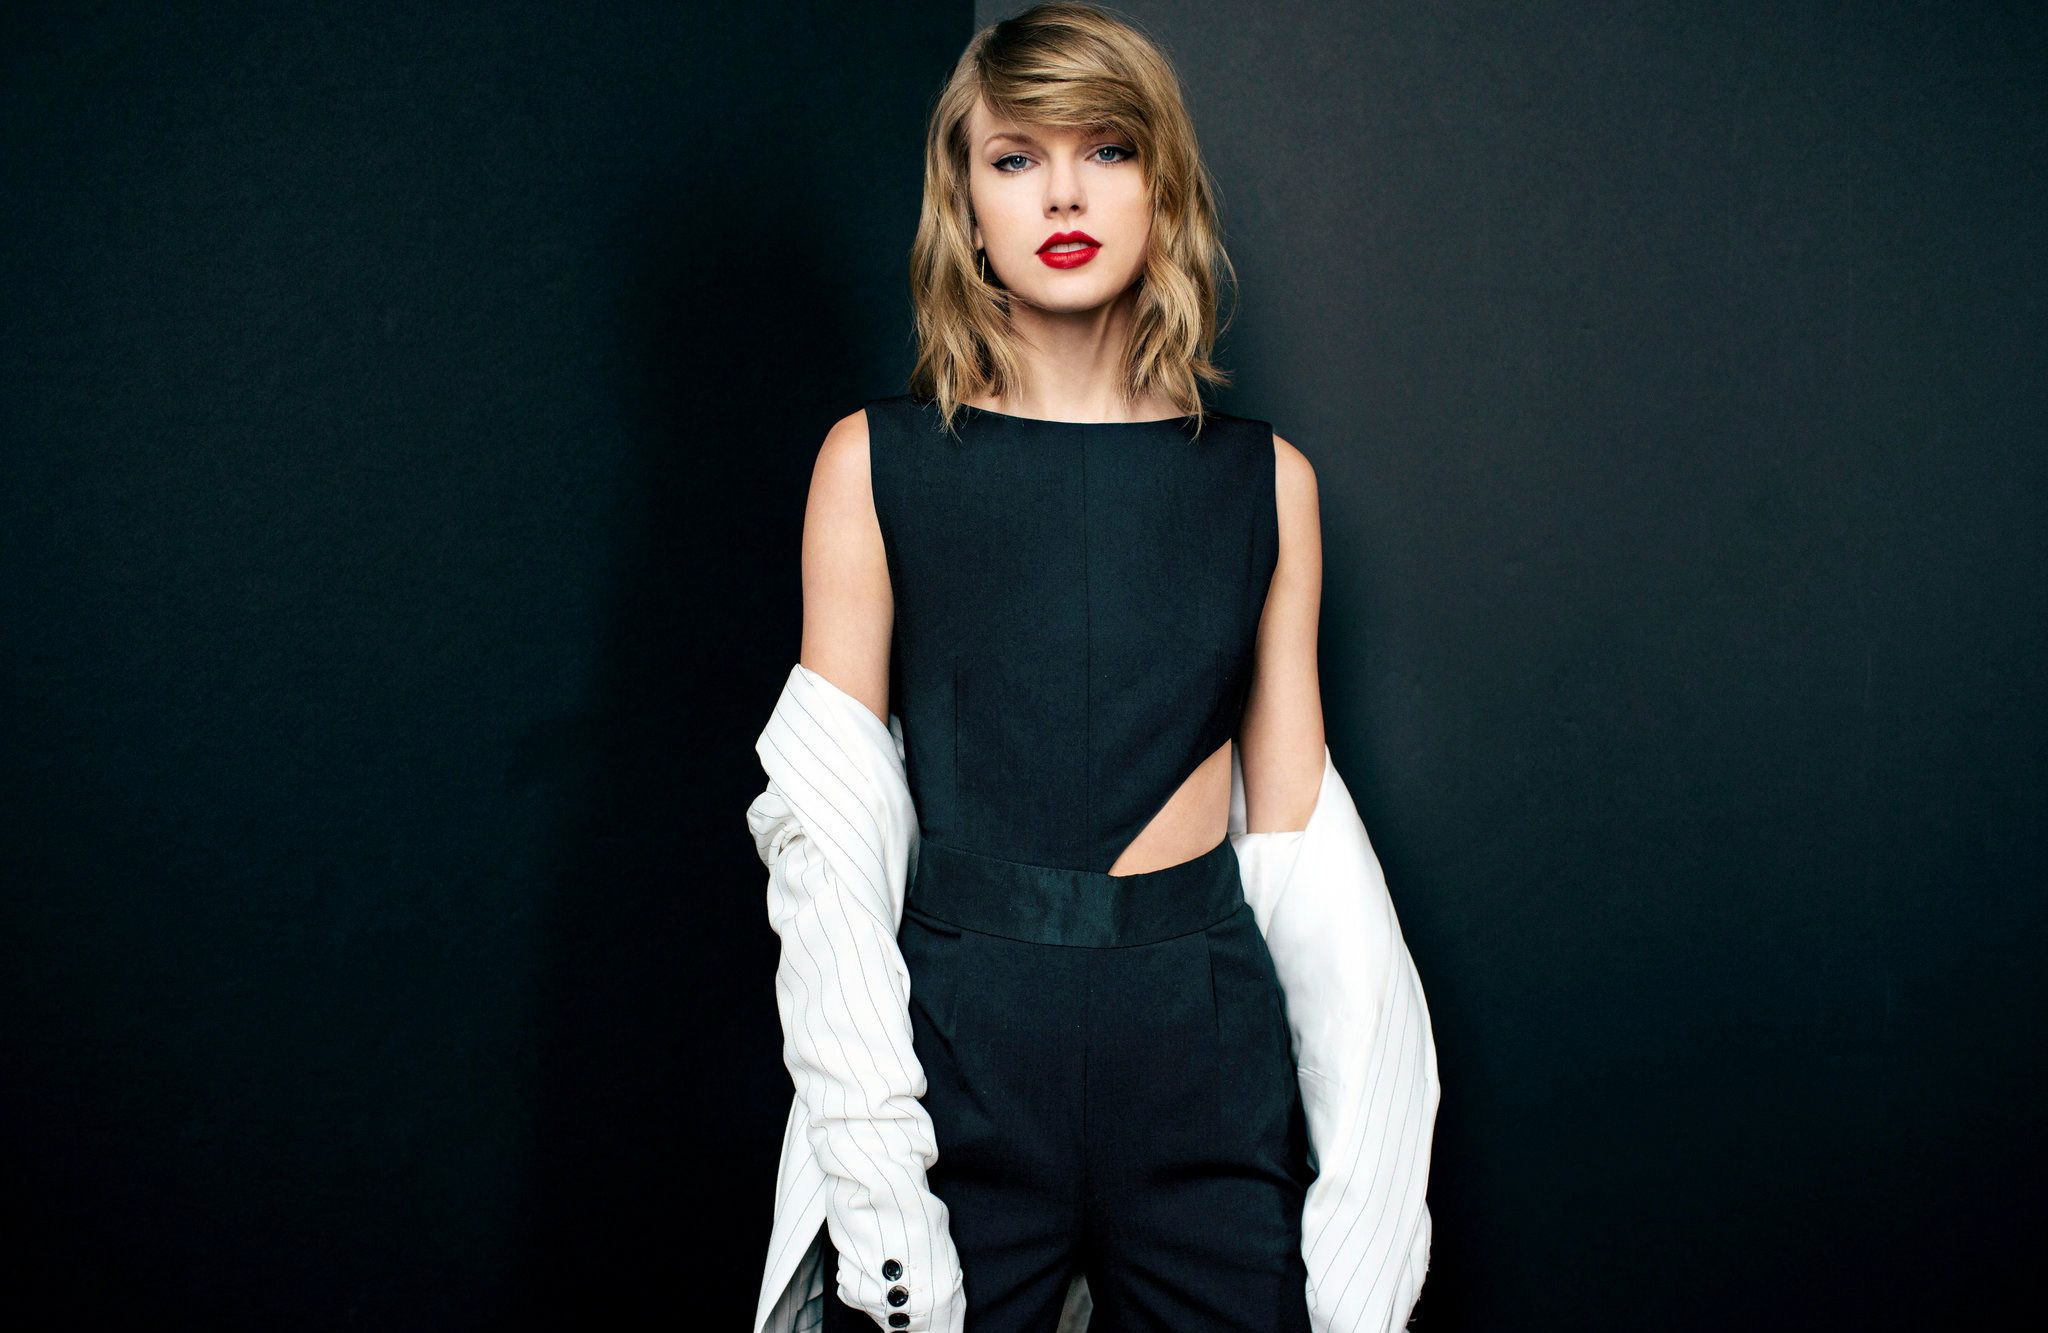 1989 Taylor Swift Wallpapers Top Free 1989 Taylor Swift Backgrounds Wallpaperaccess